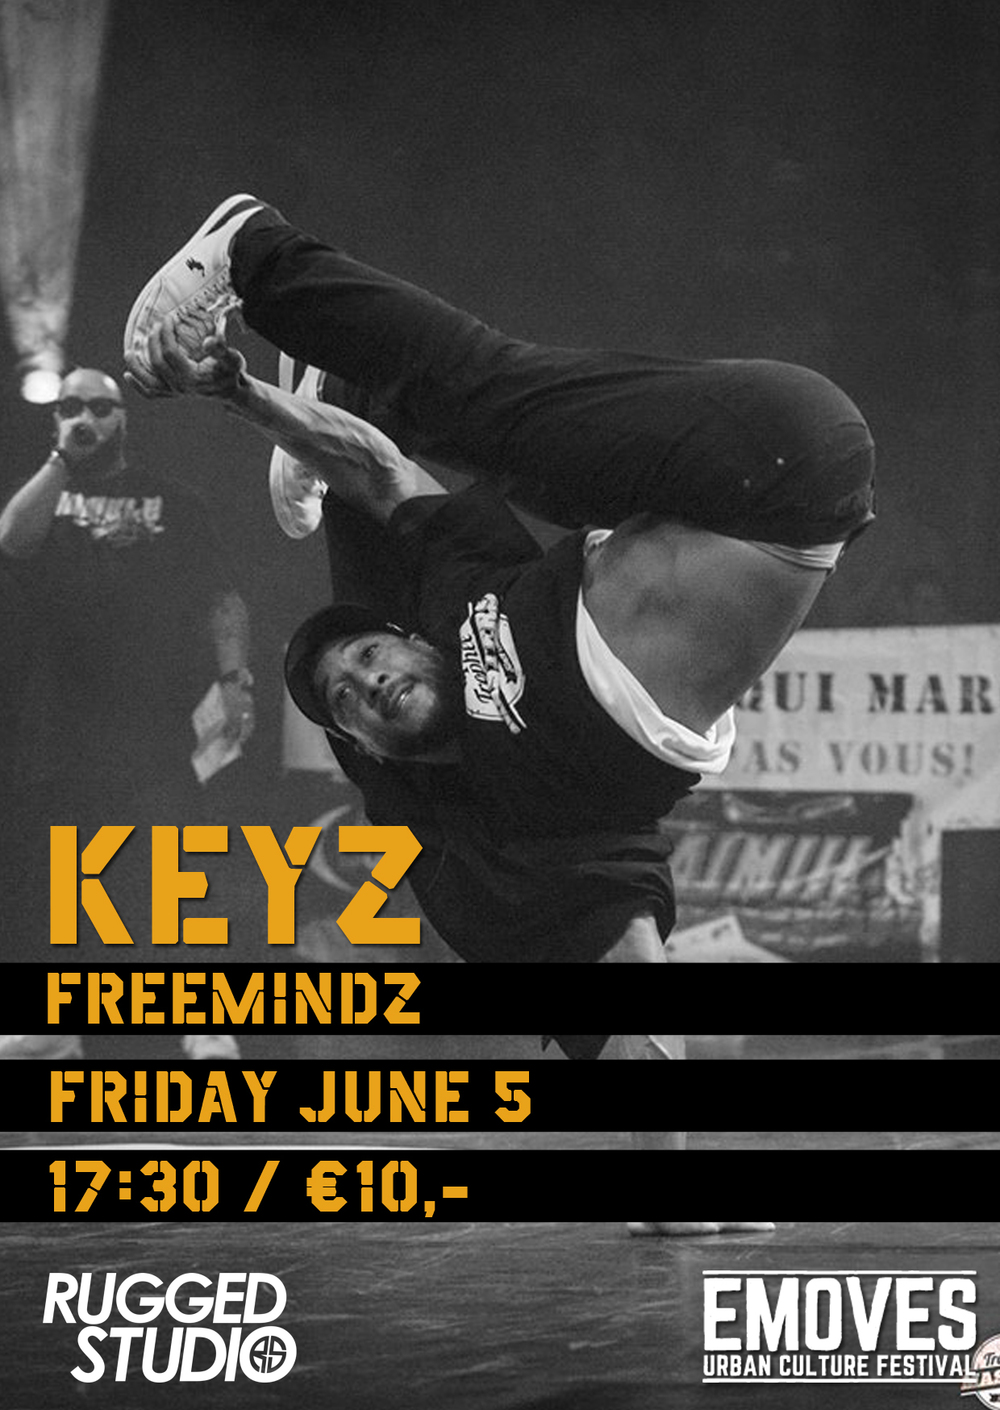 keyz breakdance workshop eindhoven rugged studio